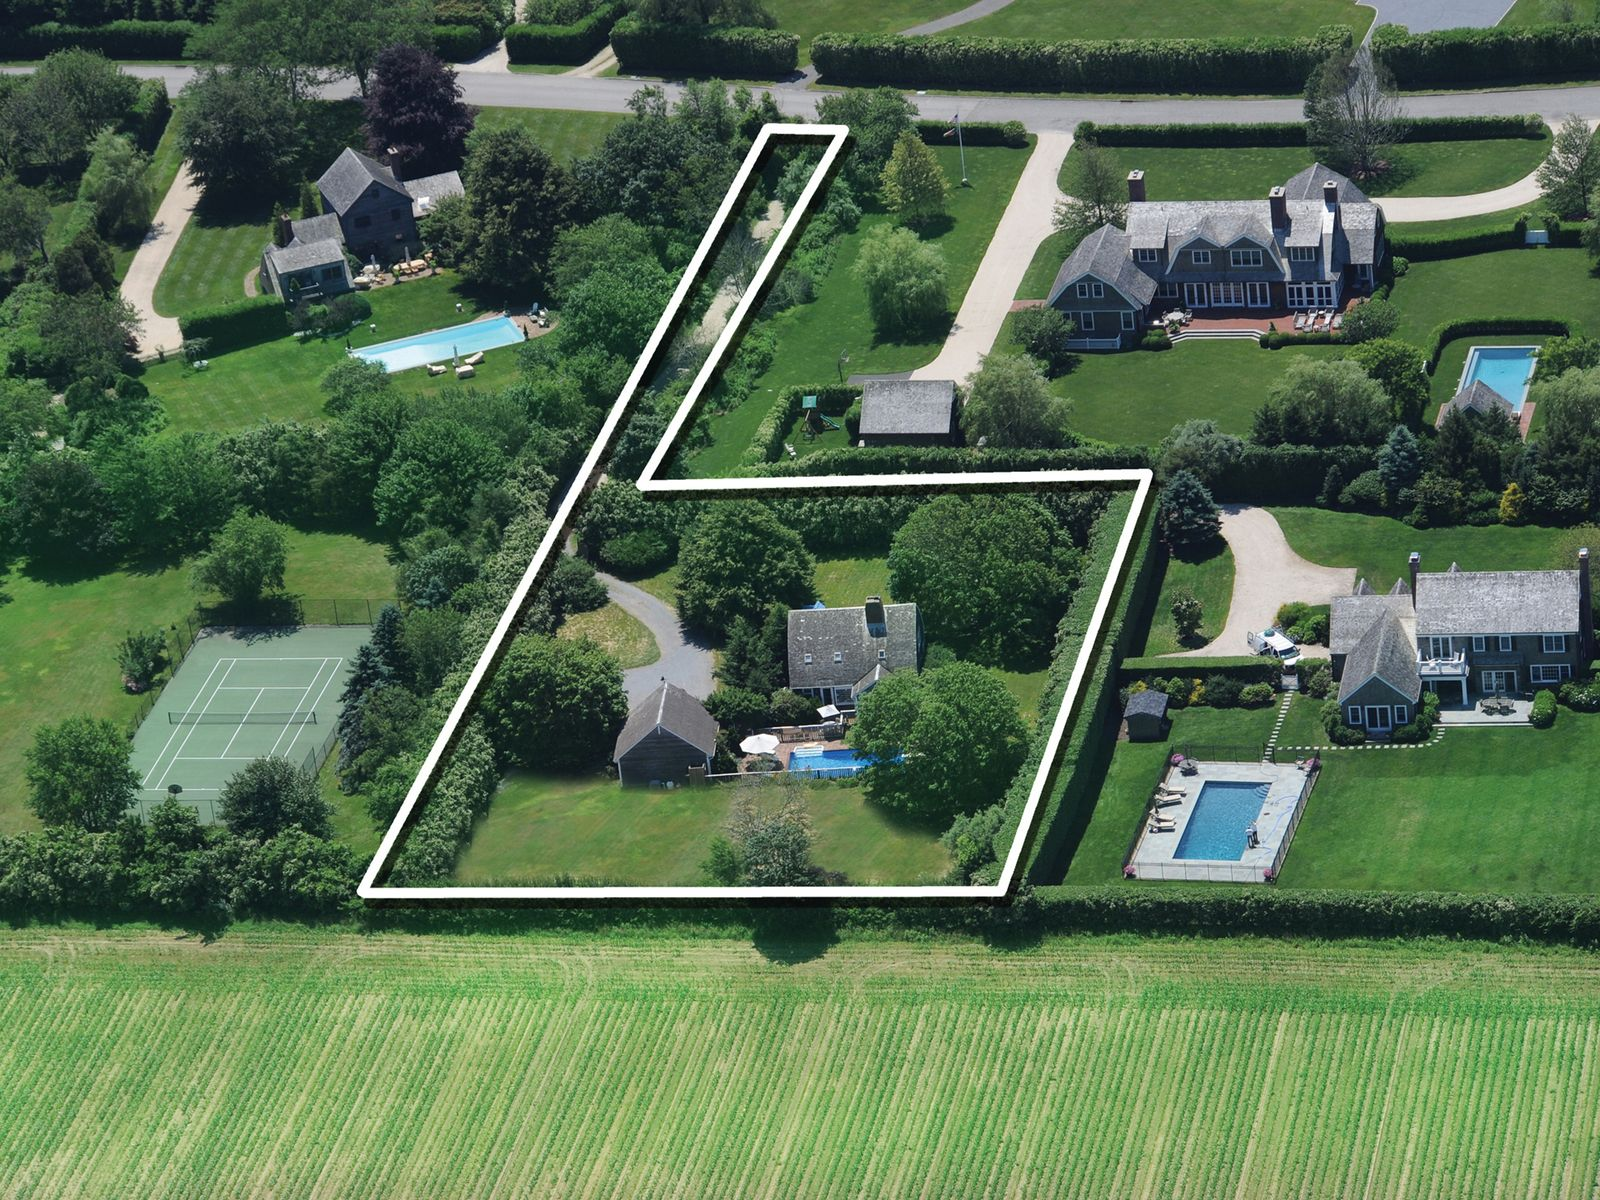 Bridgehampton Near the Ocean, Bridgehampton NY Single Family Home - Hamptons Real Estate